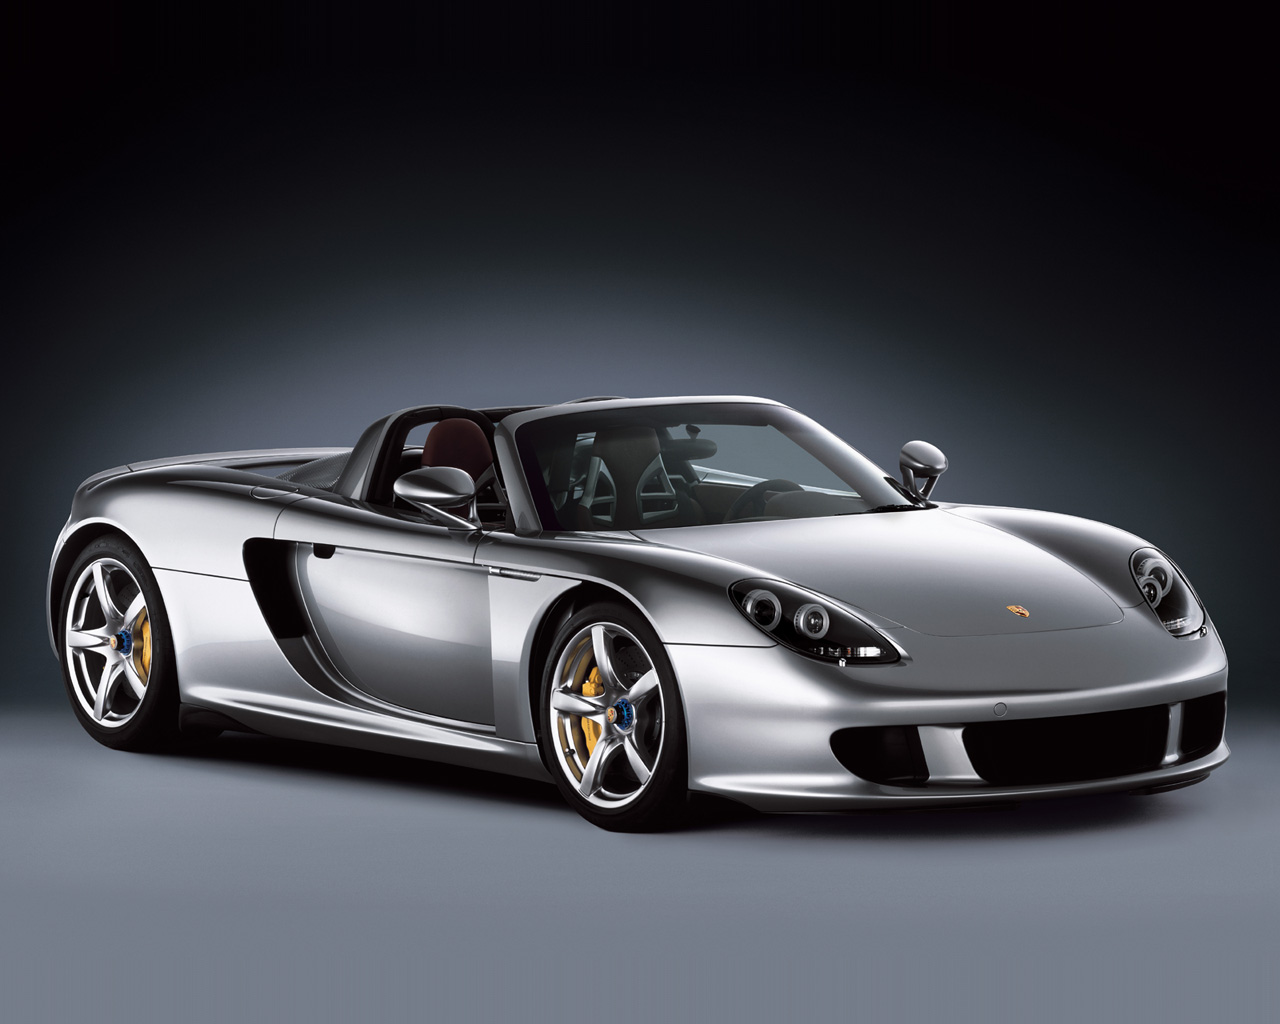 Porsche Carrera photo 01